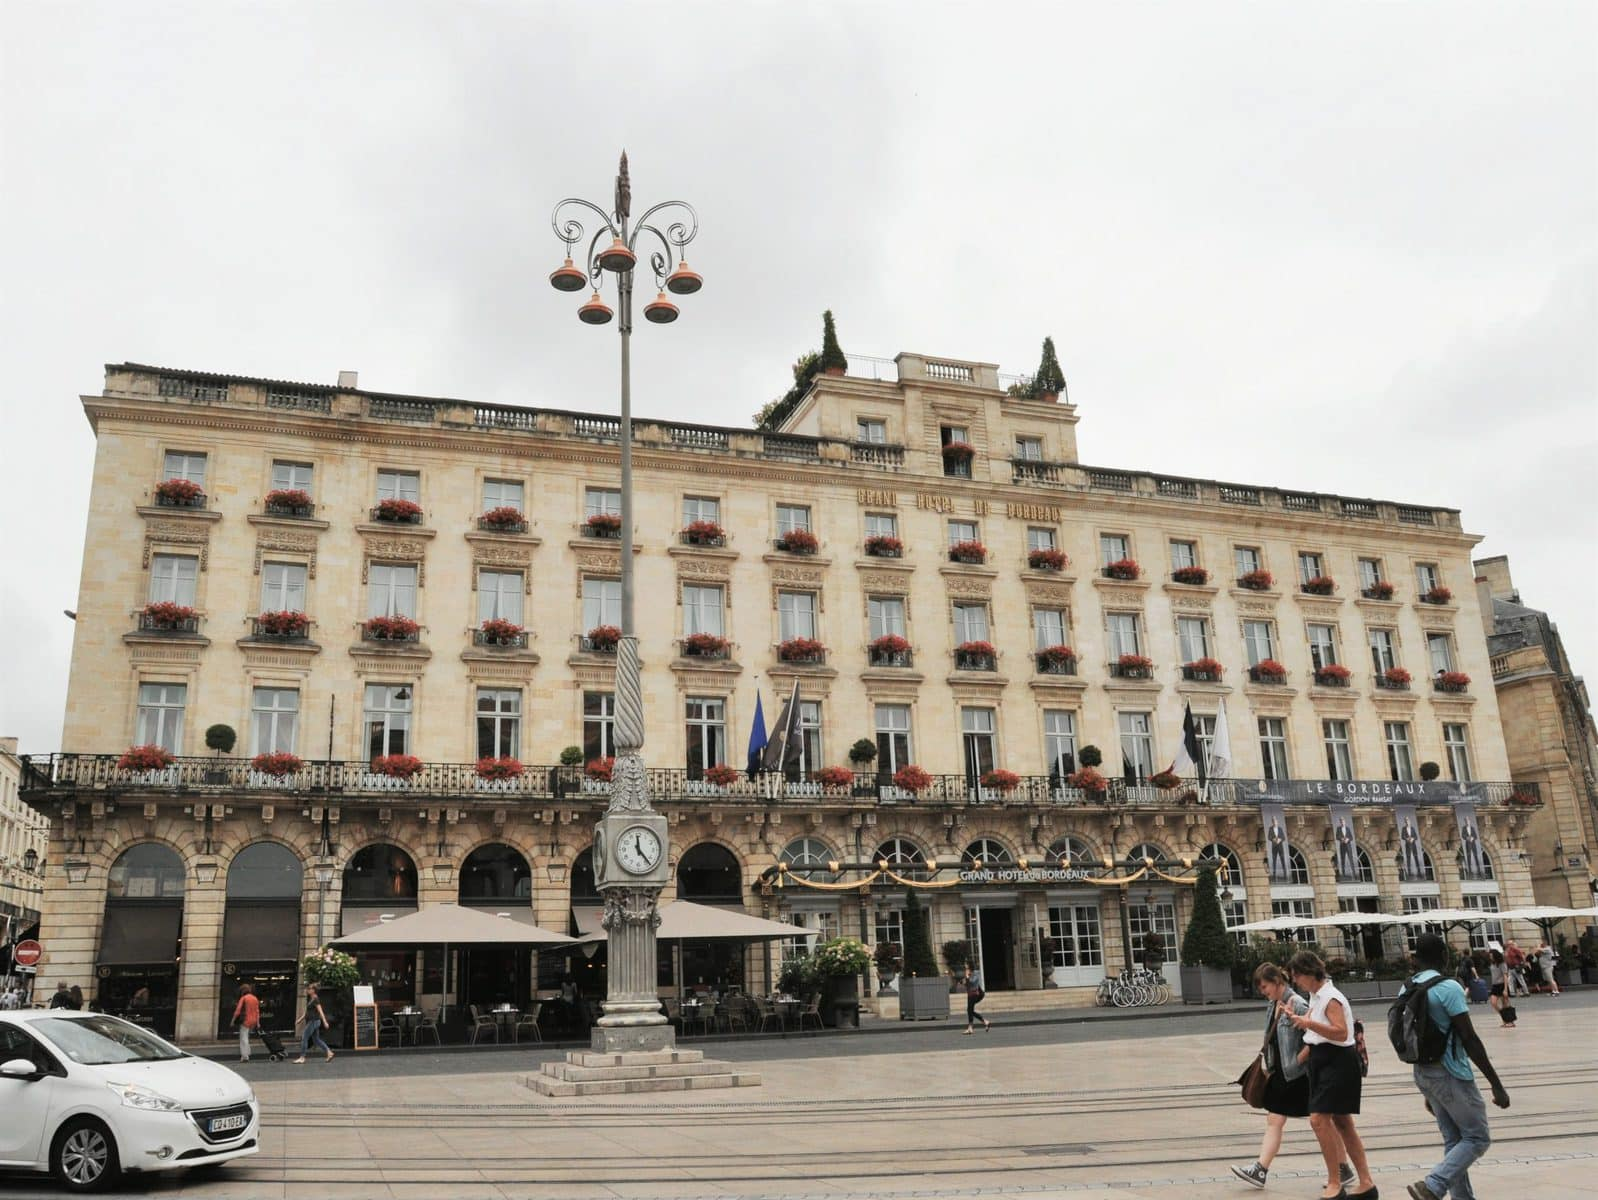 View of the Grand Hotel in Bordeaux, France